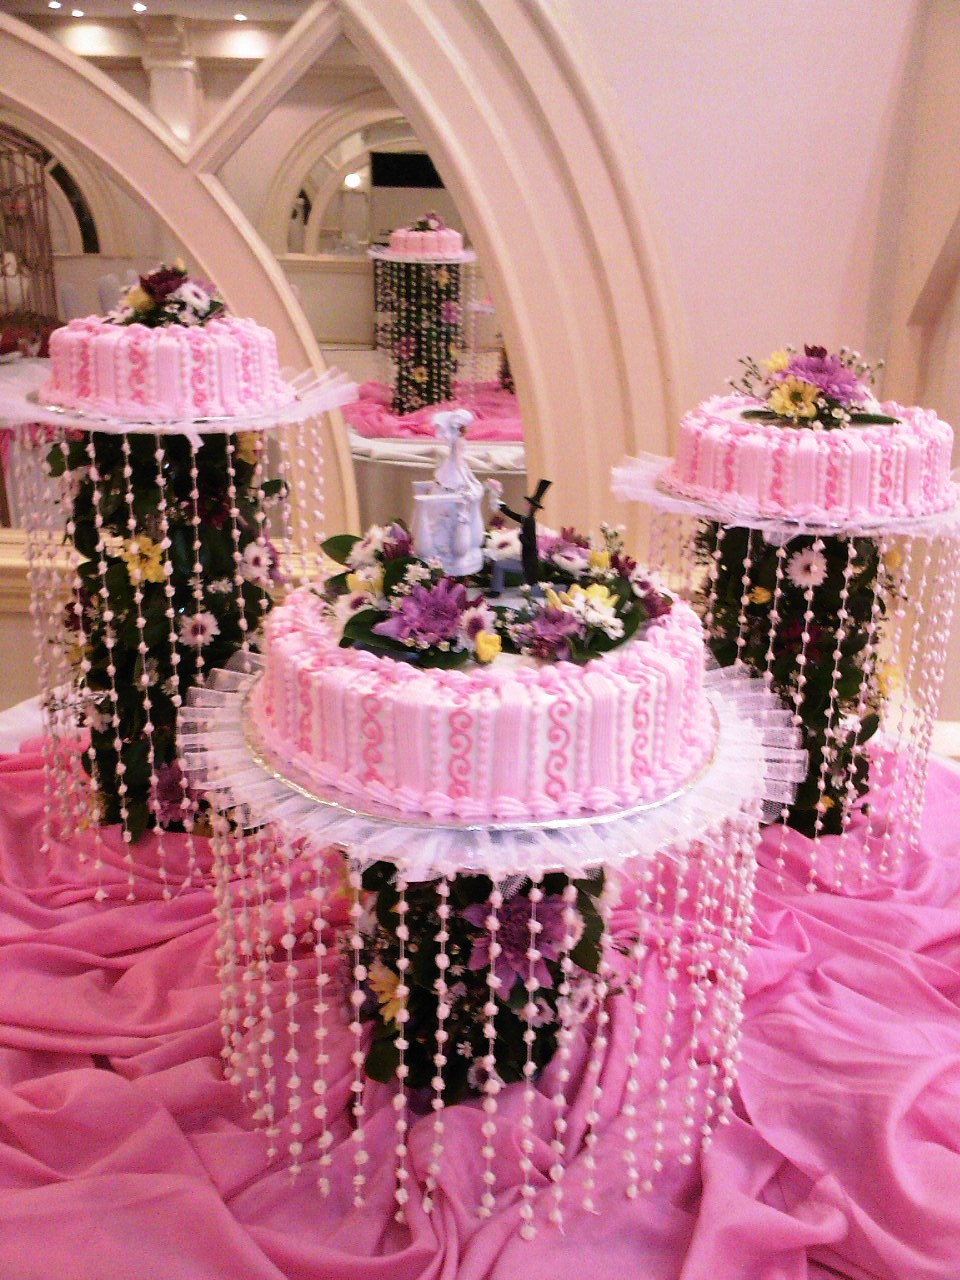 Aurimar s blog: simple wedding cake designs